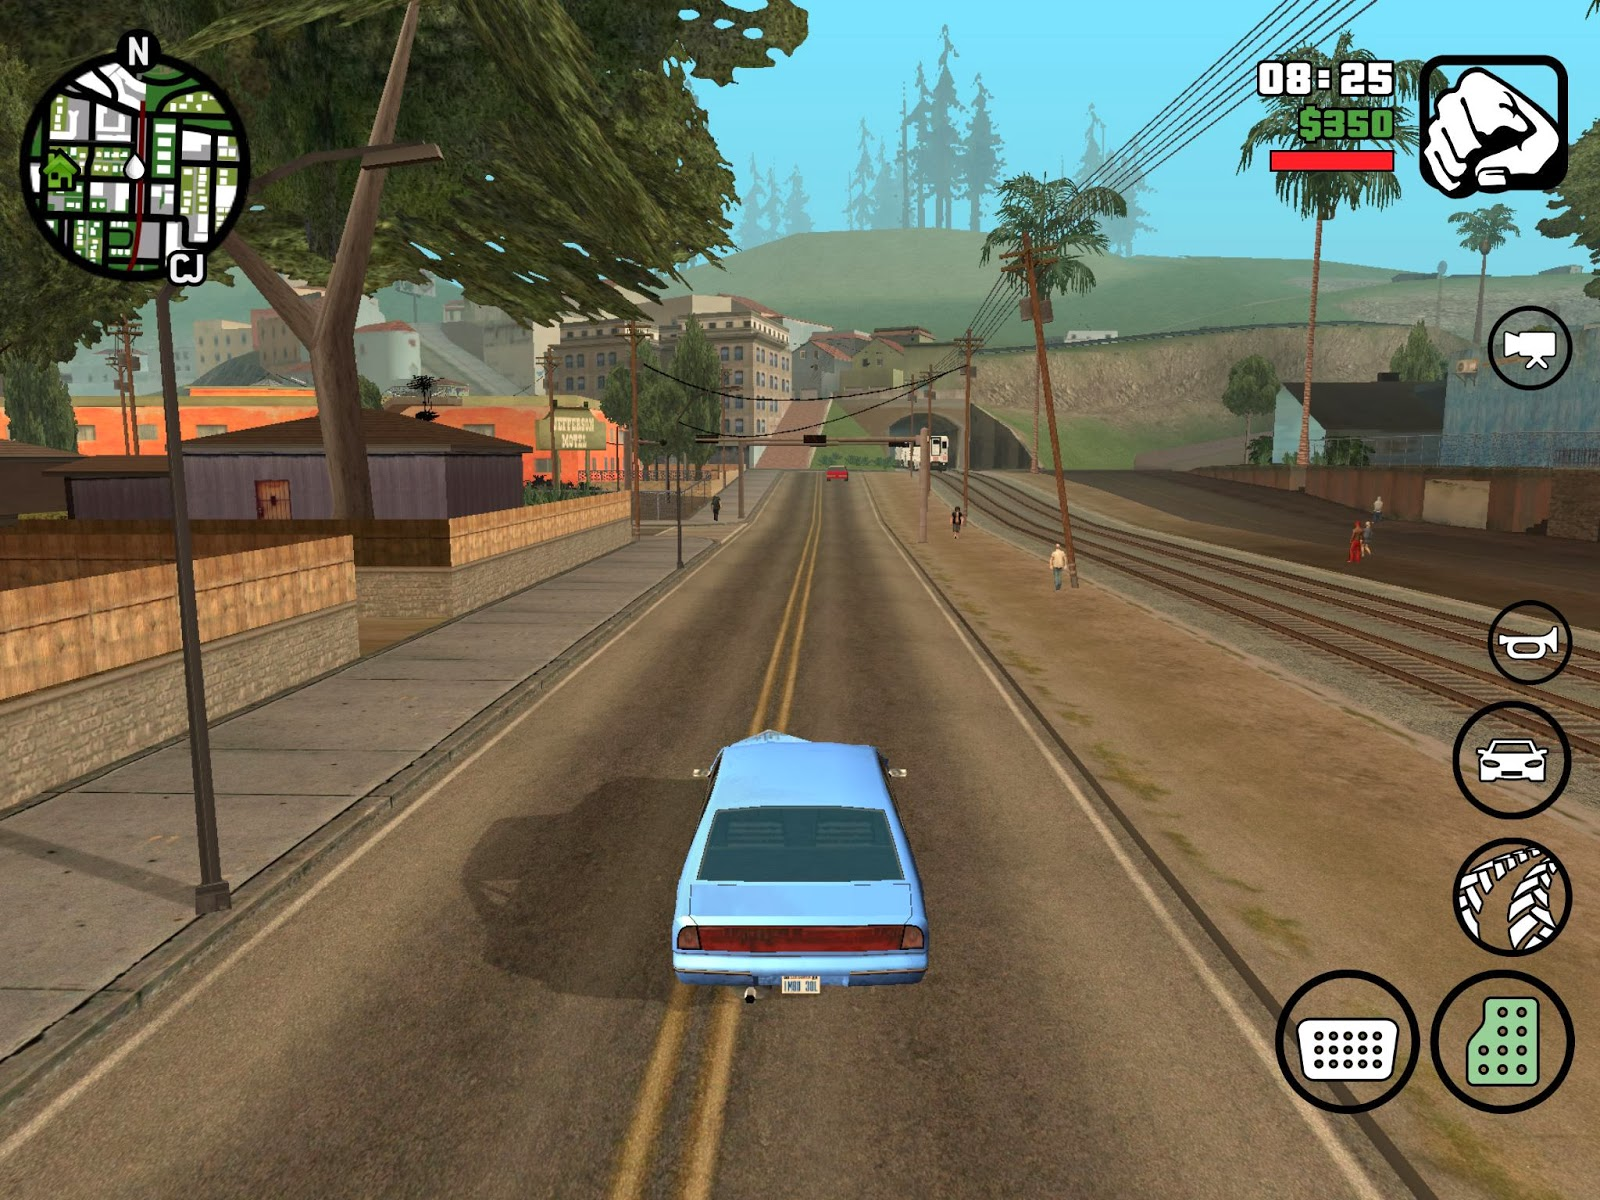 Rockstar Games brings its biggest release to mobile yet with a vast open-world covering the state of San Andreas and its three major cities - Los Santos, San Fierro and Las Venturas - with enhanced visual fidelity and over 70 hours of gameplay. Grand Theft Auto: San Andreas features...